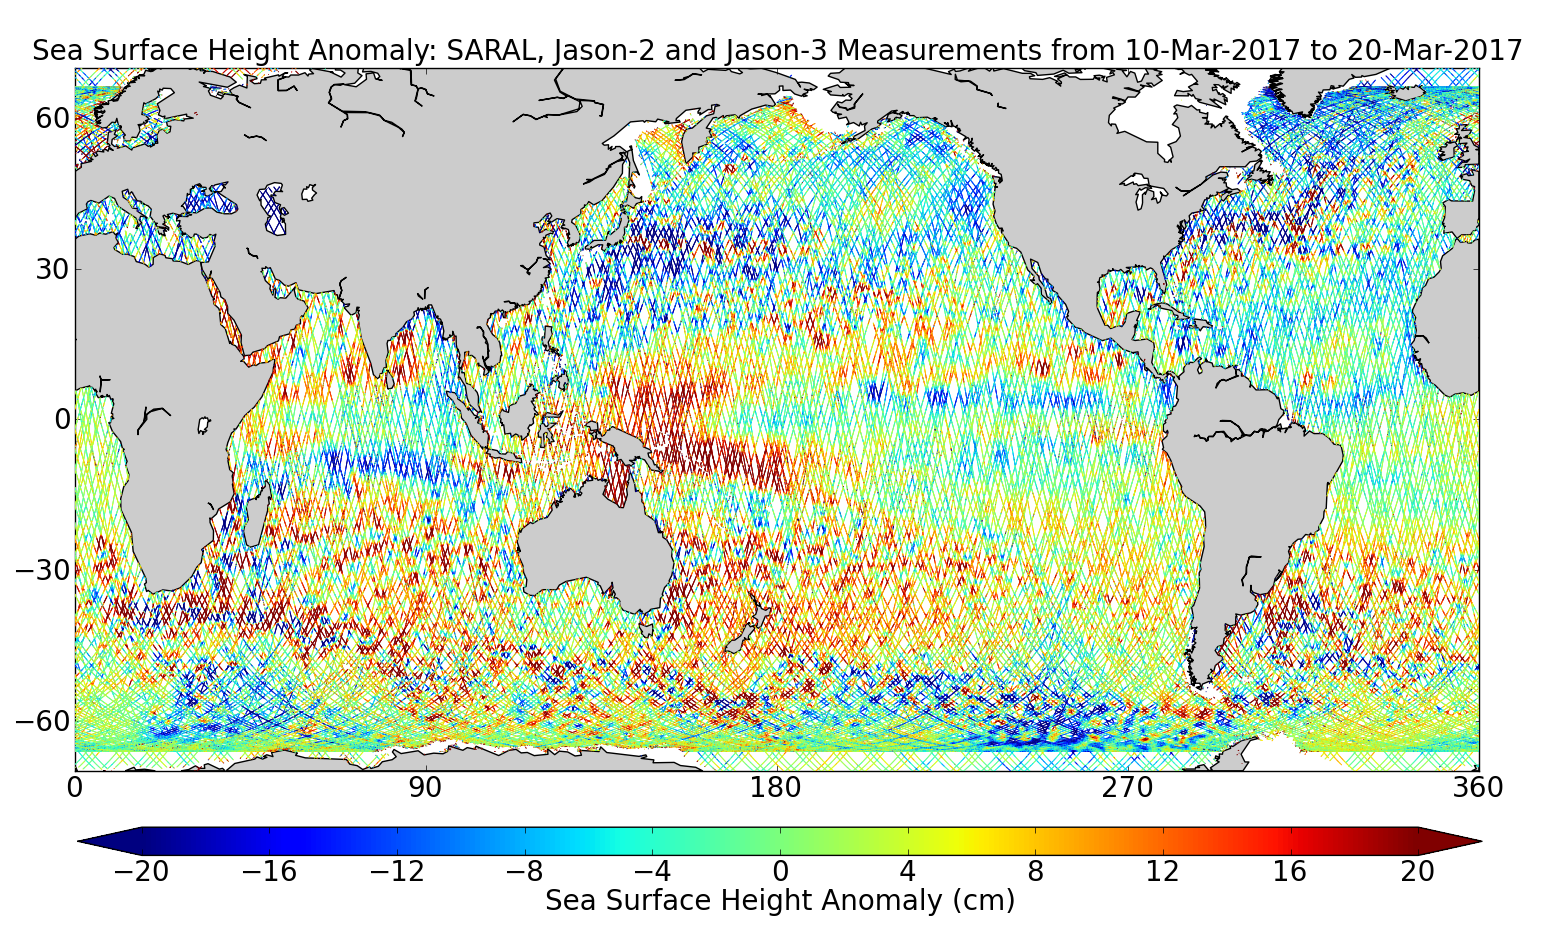 Sea Surface Height Anomaly: SARAL, Jason-2 and Jason-3 Measurements from 10-Mar-2017 to 20-Mar-2017